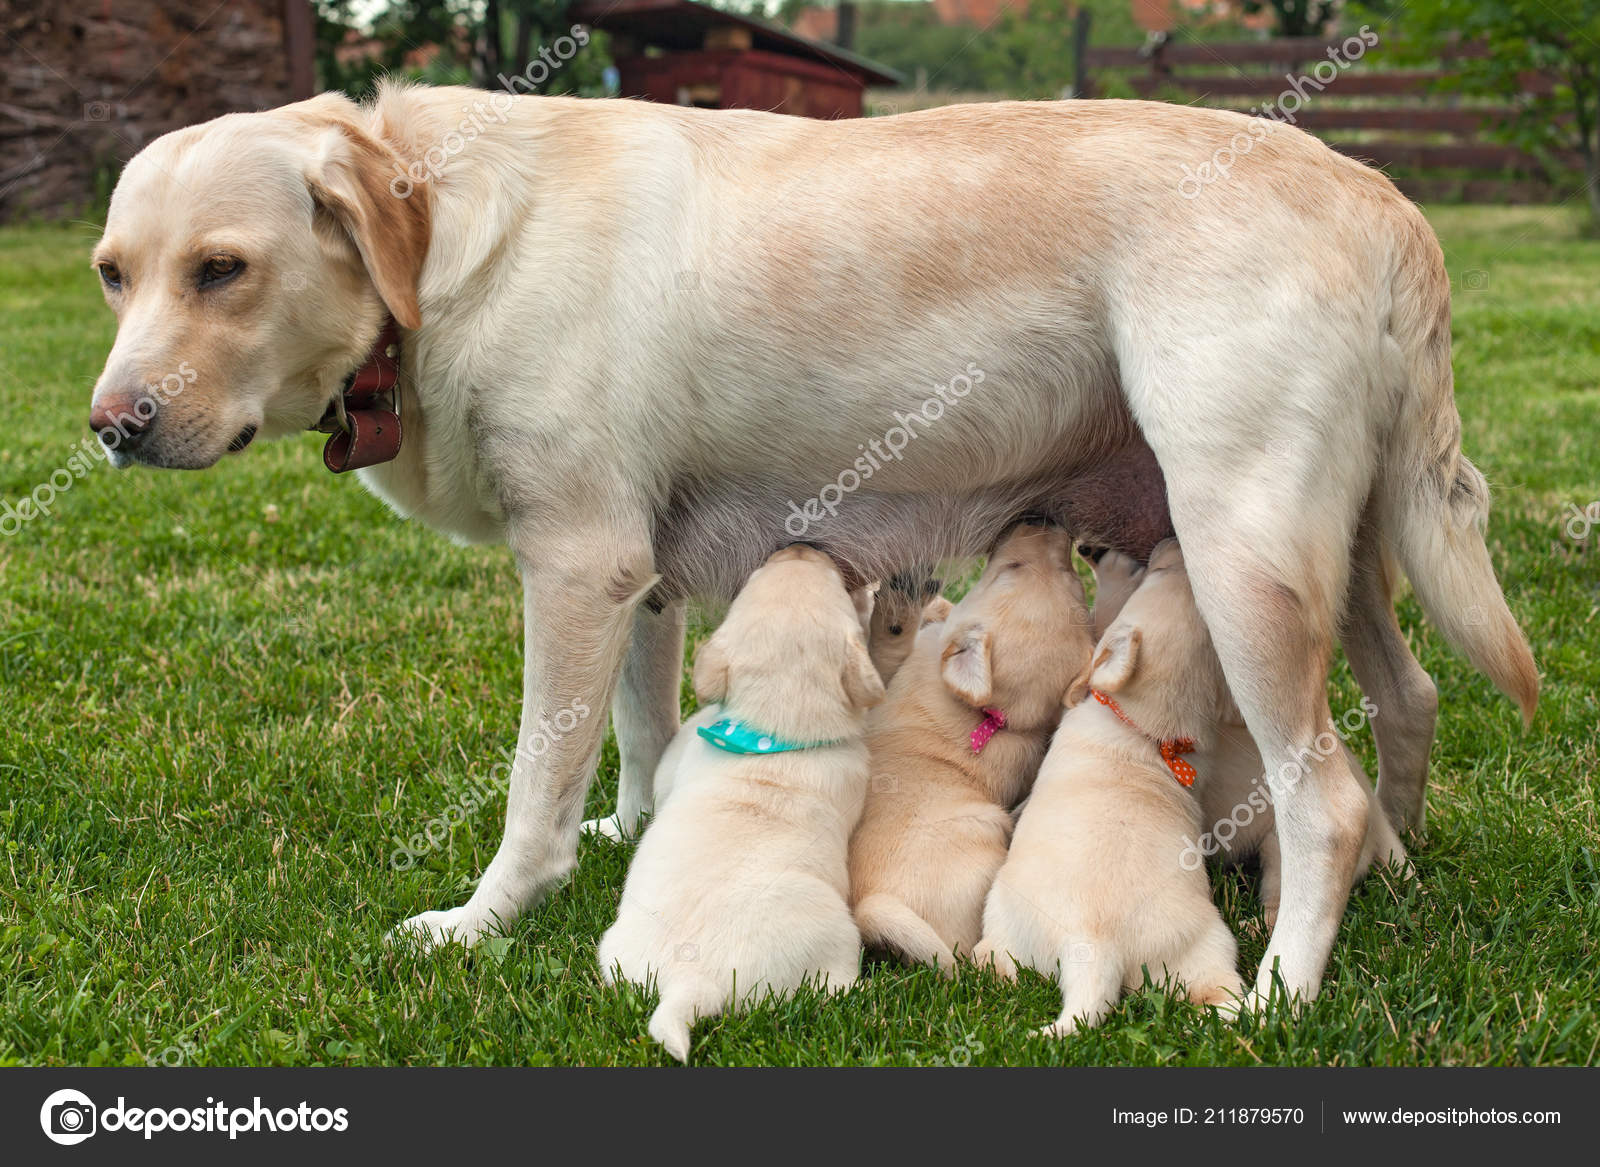 Chubby Yellow Lab Puppies Cute Labrador Puppies Suckling Standing Toes Colorful Scarves Tell Them Stock Photo C Ilona75 211879570